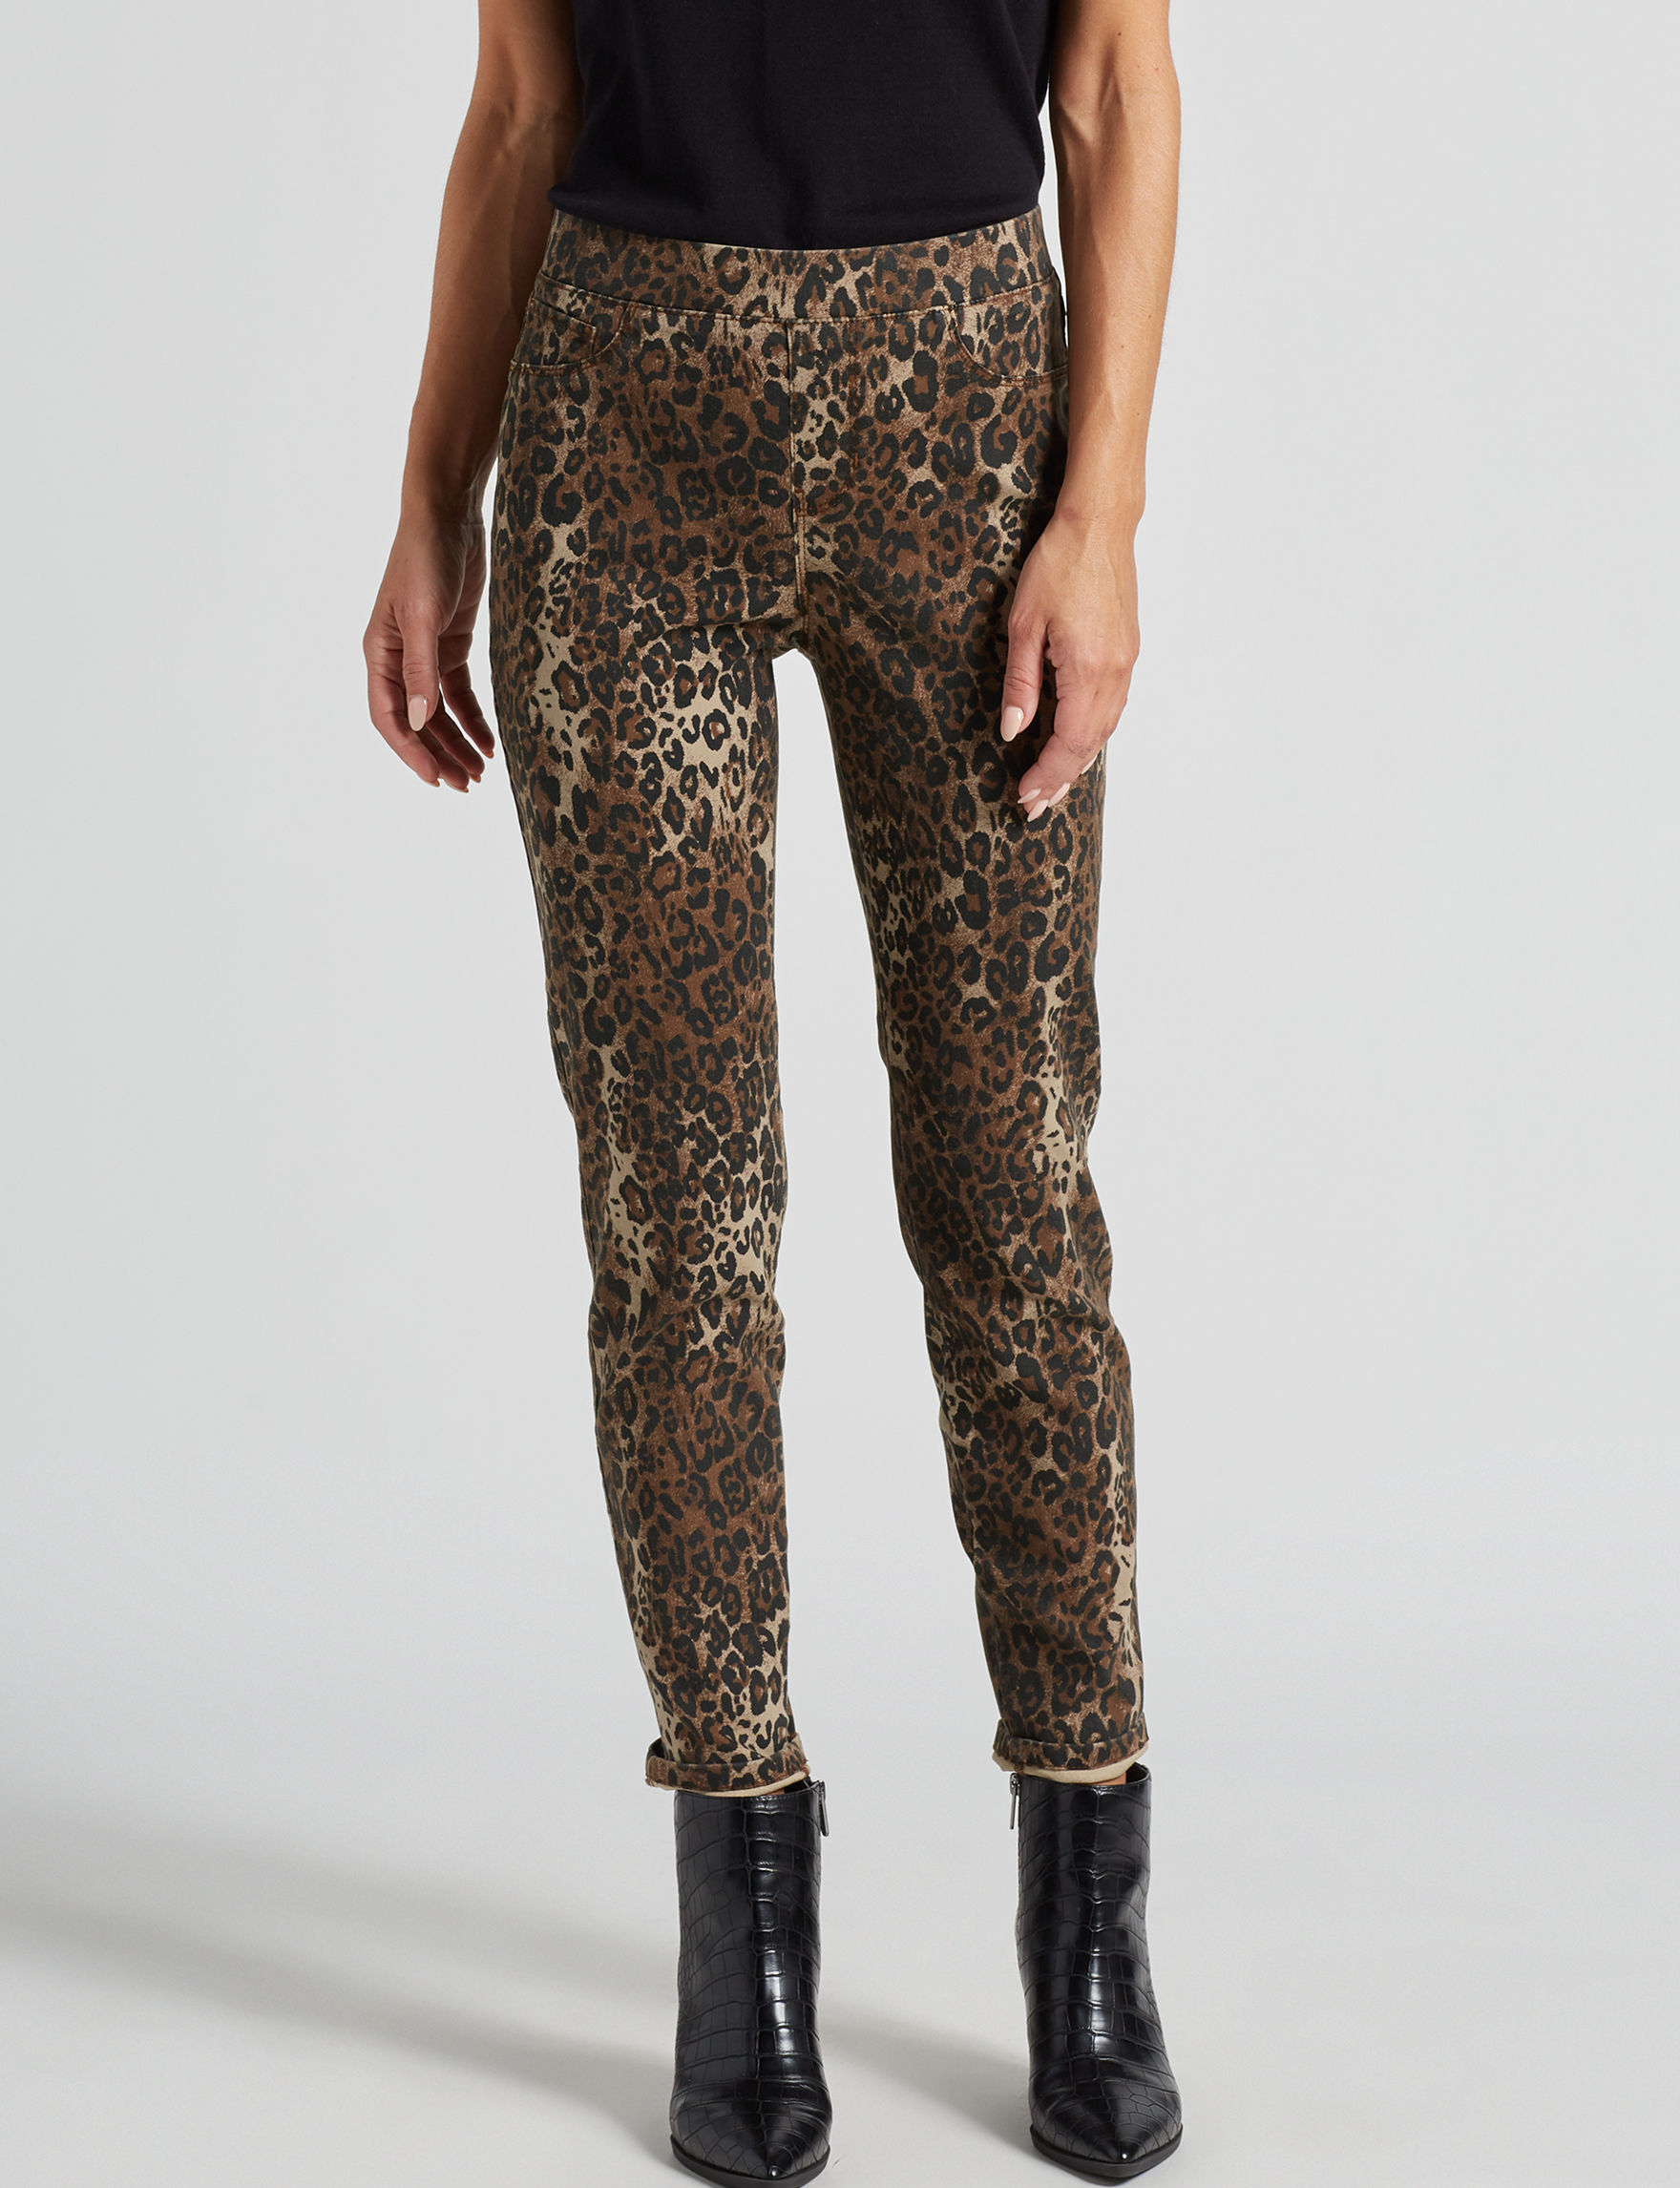 Sound Style Leopard Leggings